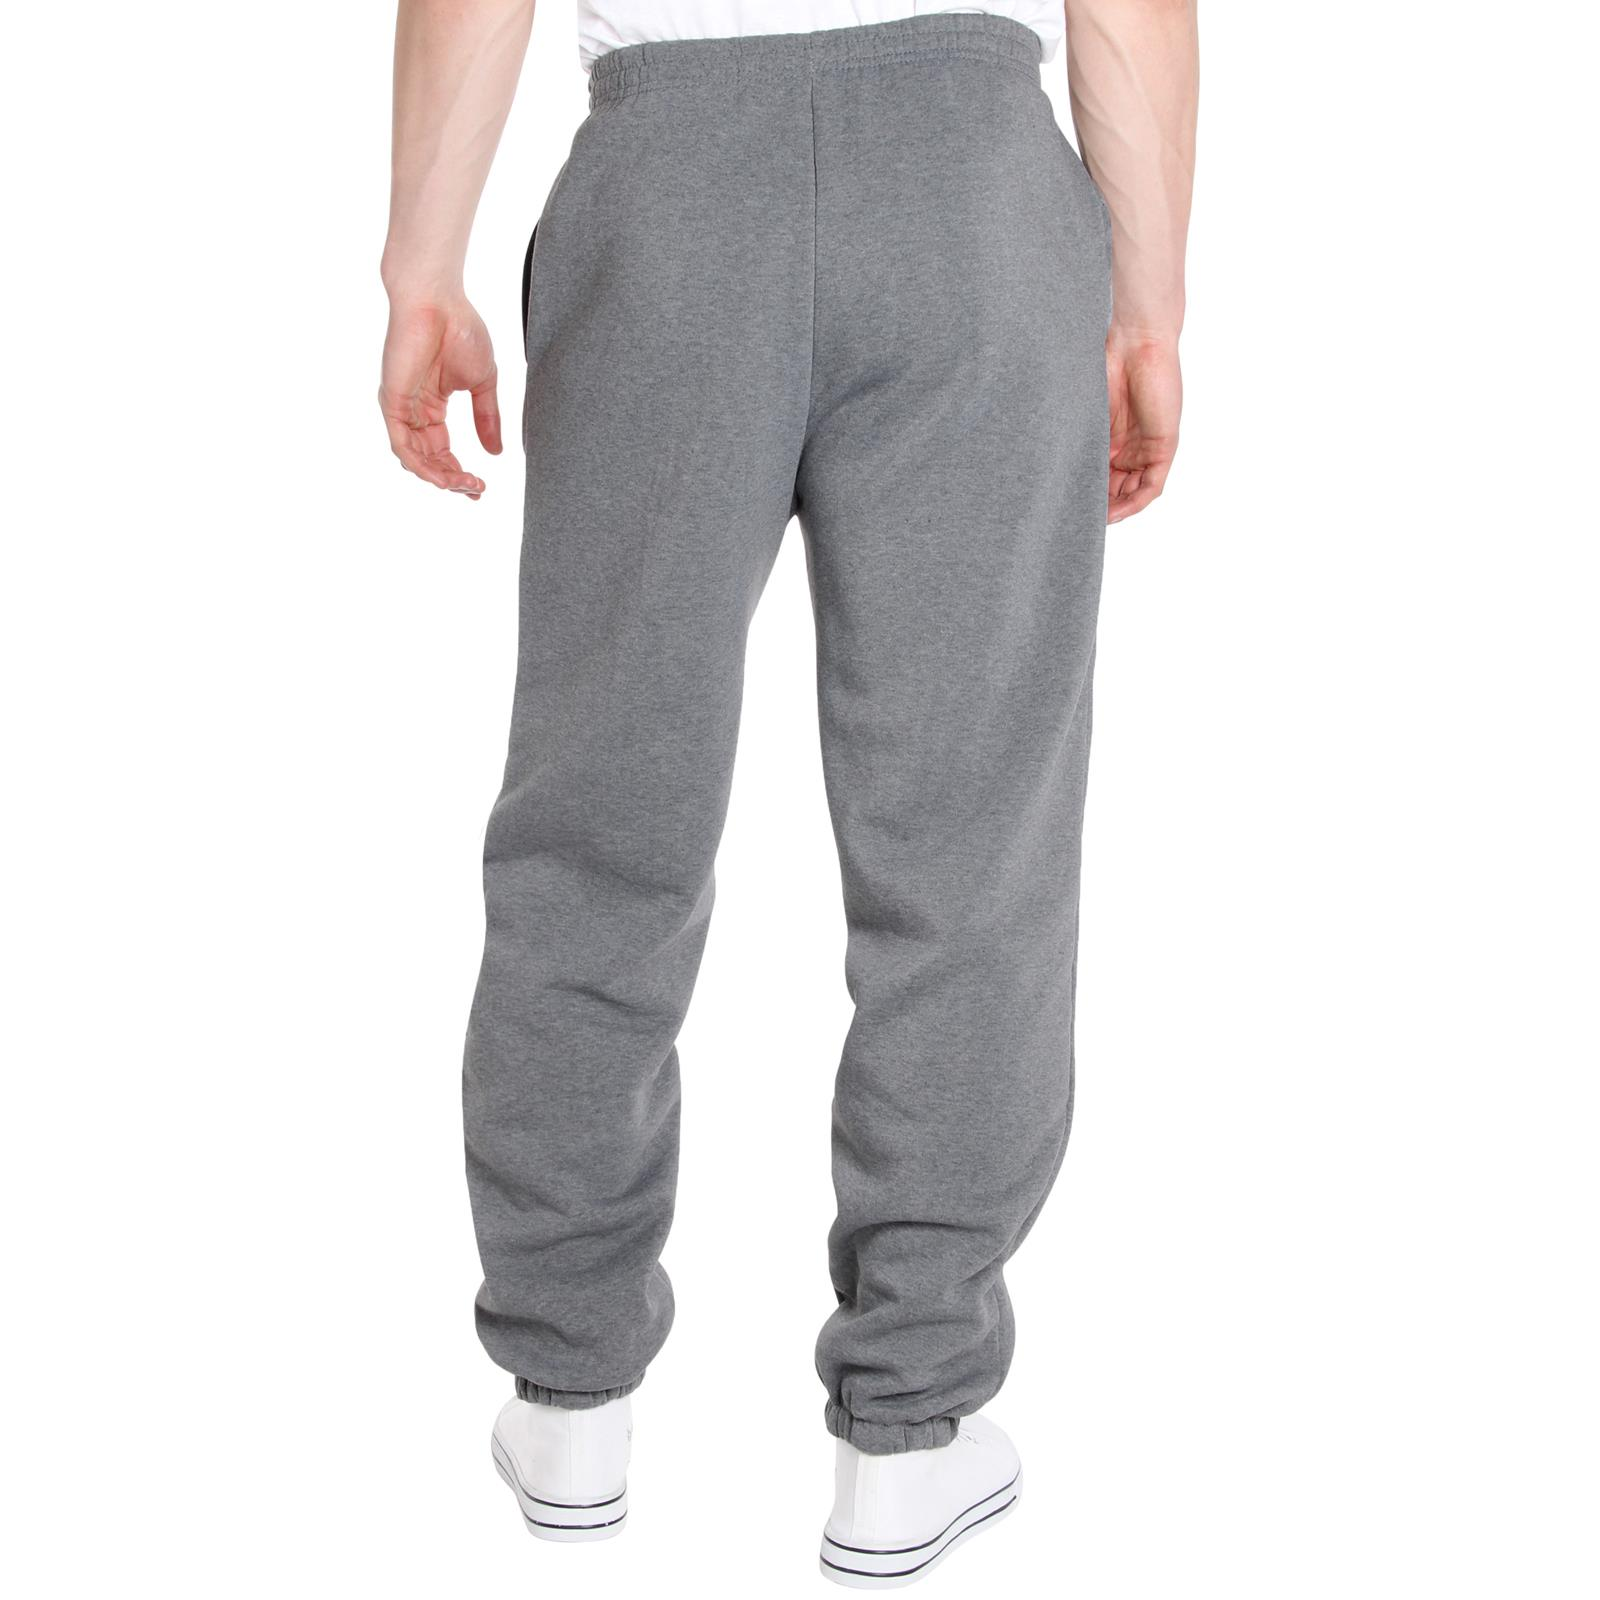 Mens-Tracksuit-Bottoms-Striped-Joggers-Jogging-Trousers-Fleece-Pants-Casual-Work thumbnail 29